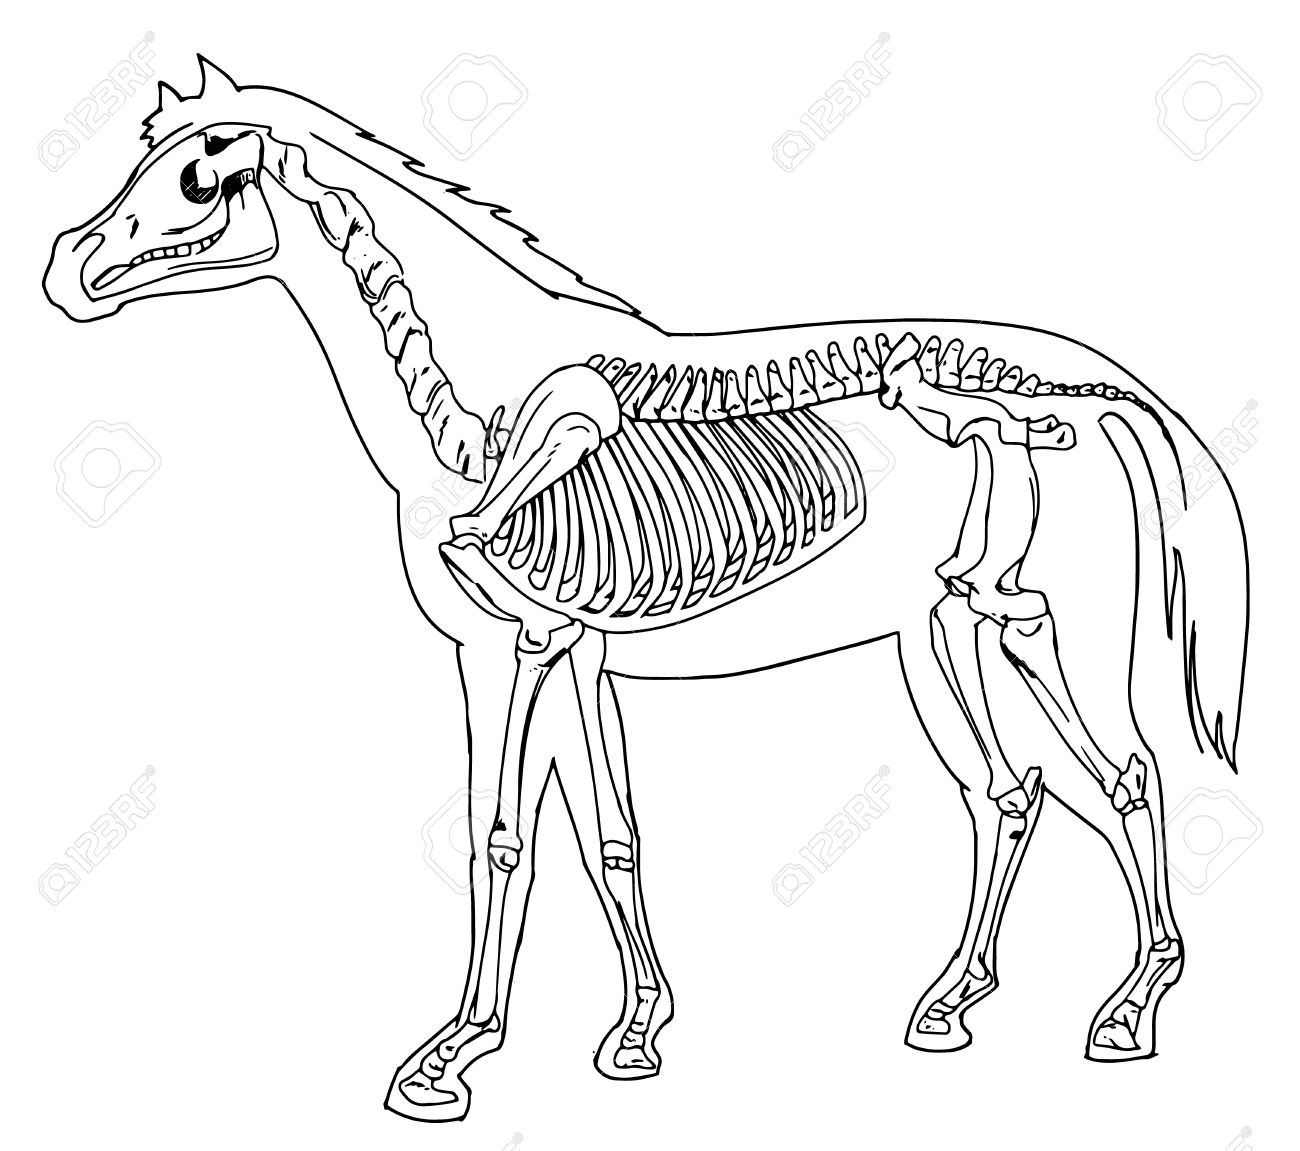 Diagram of a horse skeleton royalty free cliparts vectors and diagram of a horse skeleton stock vector 16771597 ccuart Image collections